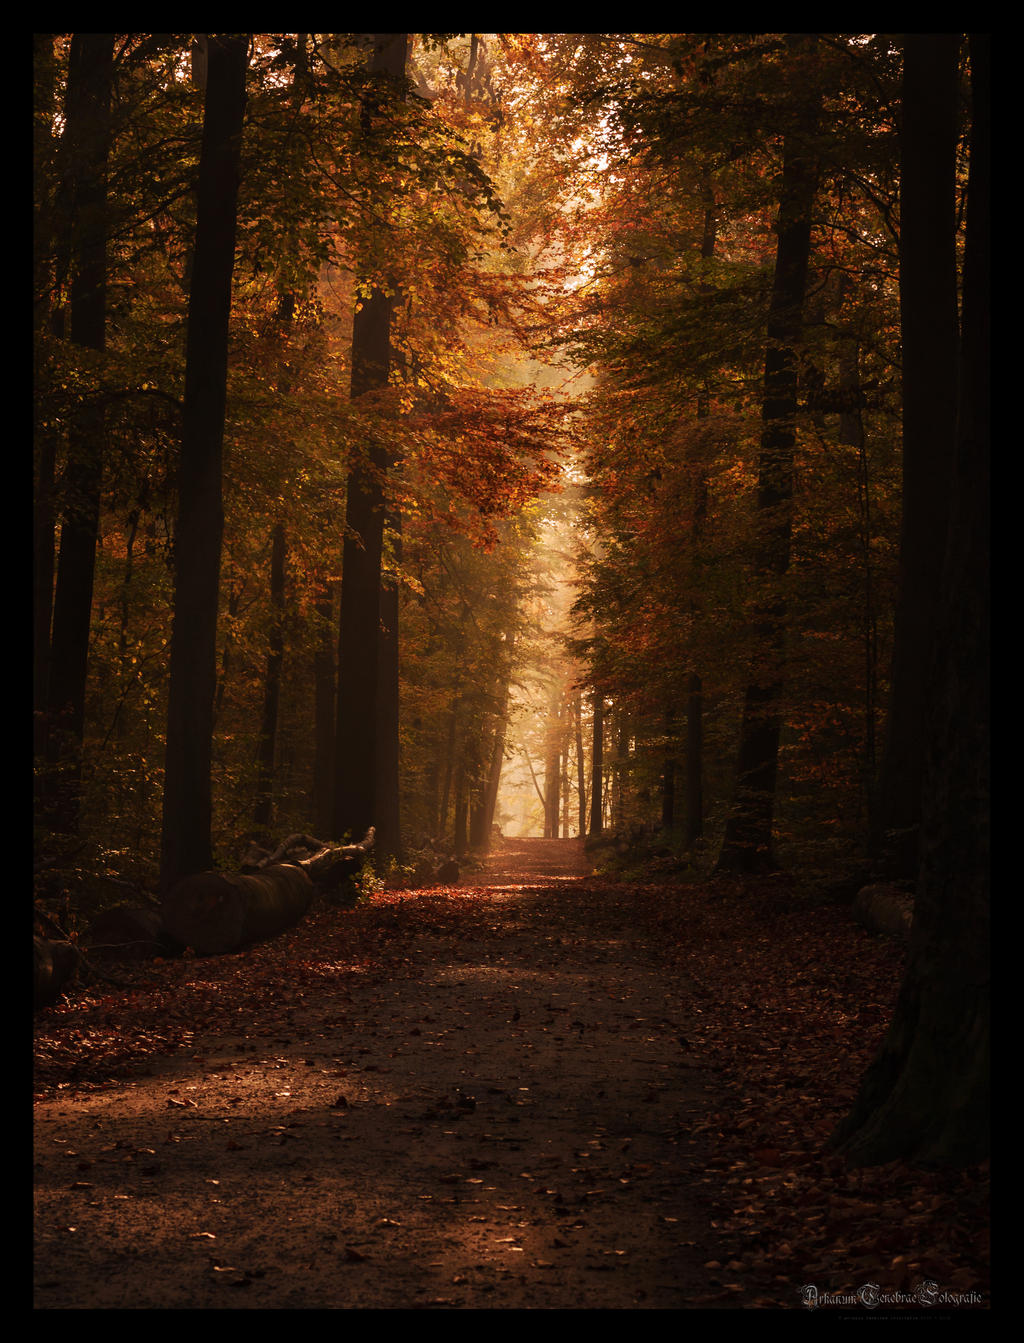 an autumn morning in the forest by ArkanumTenebrae